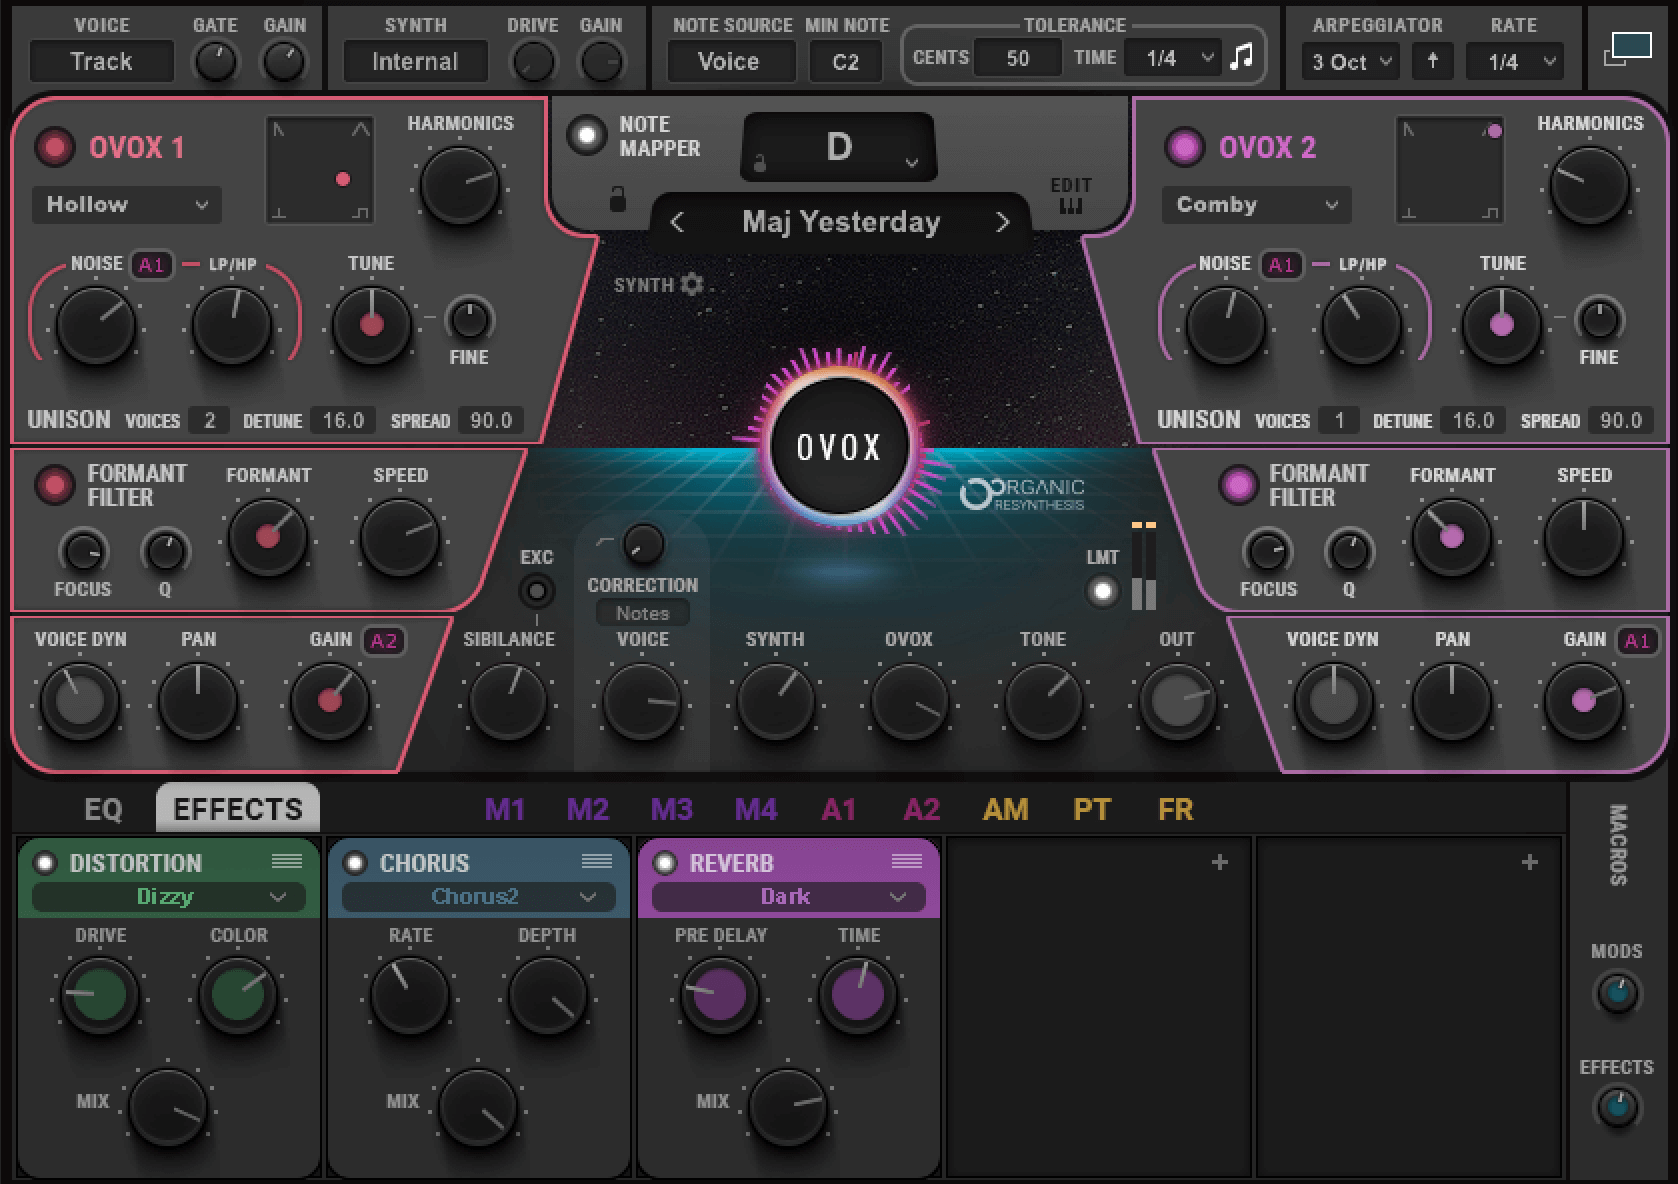 The Waves OVox settings used to create futuristic vocals